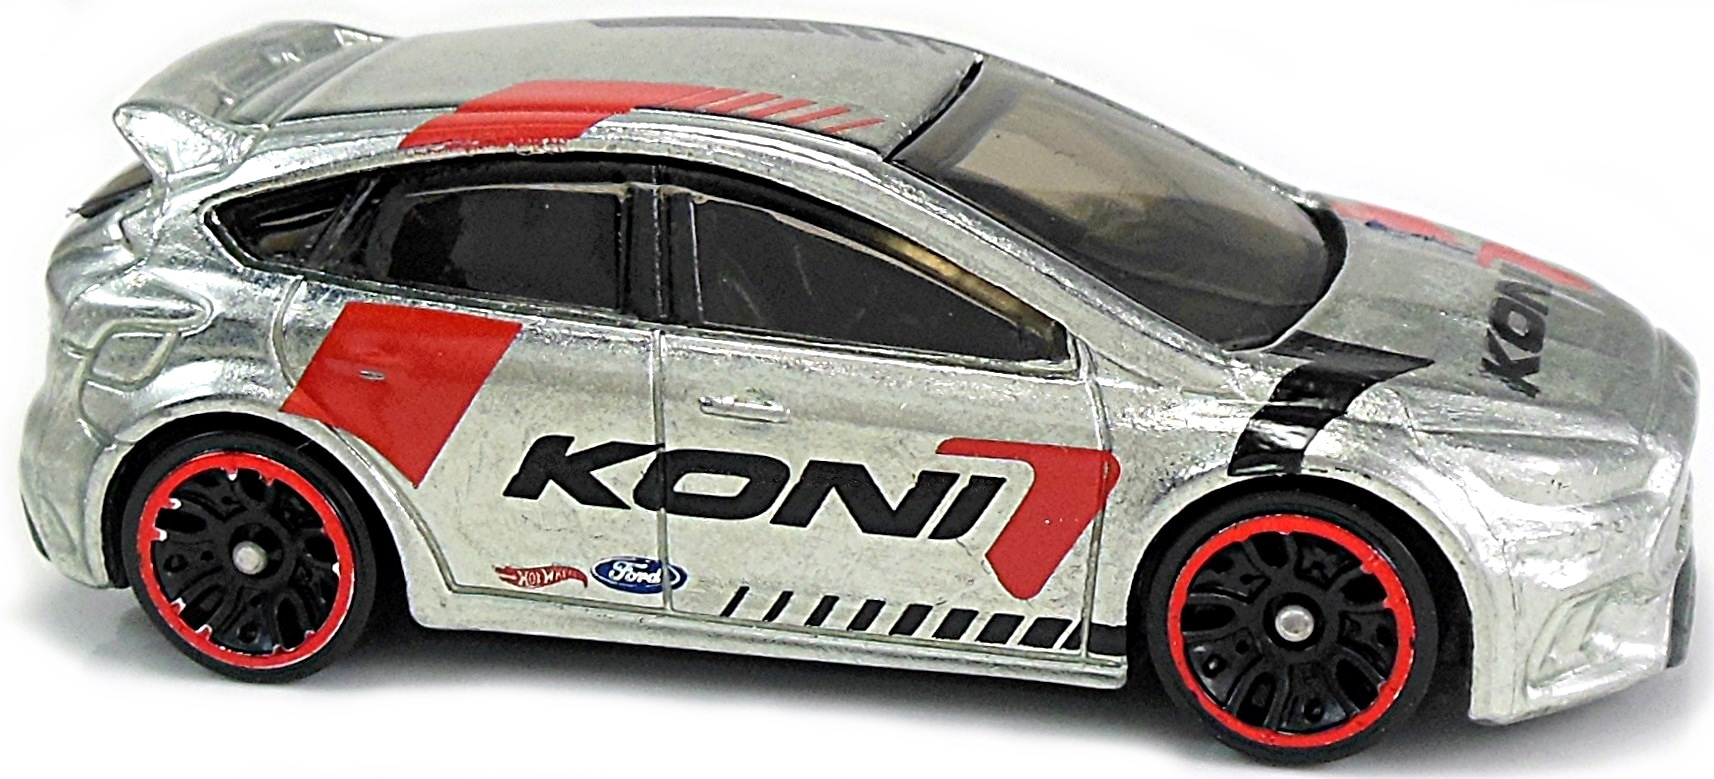 16 Ford Focus Rs 69mm 2016 Hot Wheels Newsletter